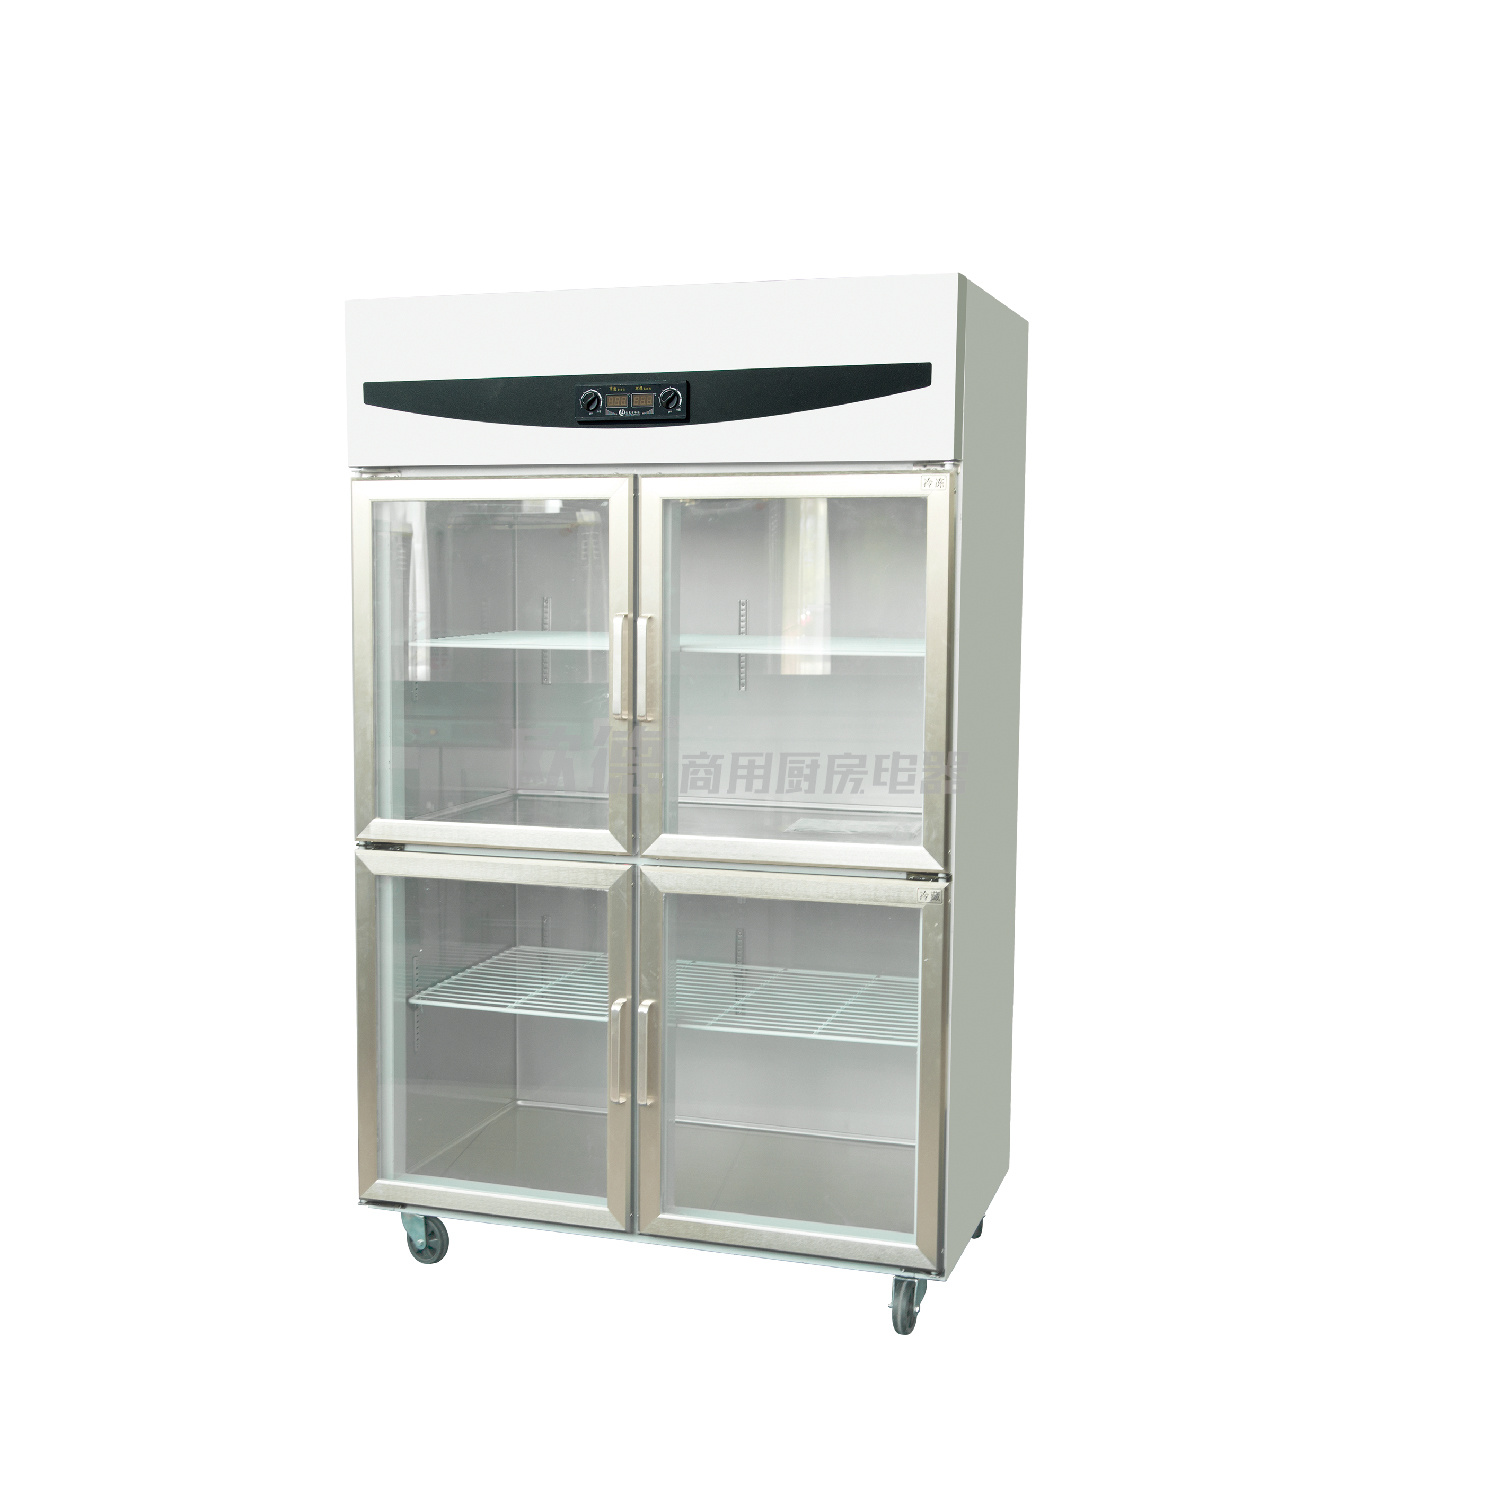 China 2017 Commercial Glass Door Refrigerator 800 L Capacity Upright